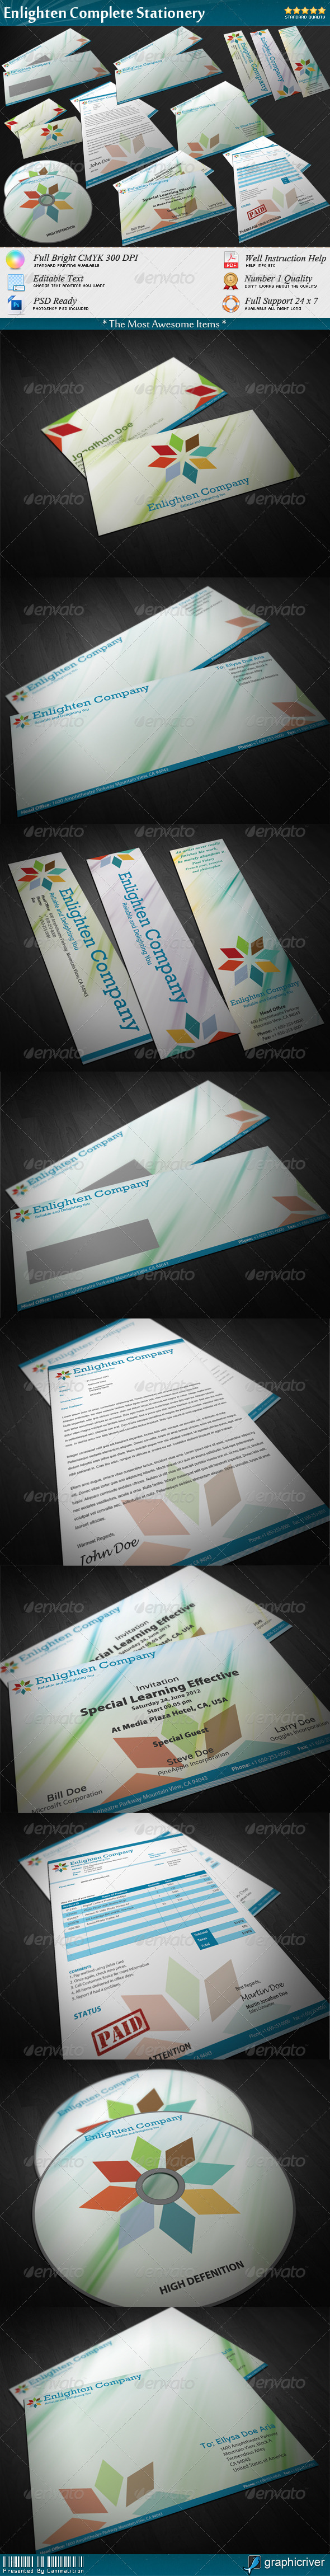 Enlighten Complete Stationery - Stationery Print Templates